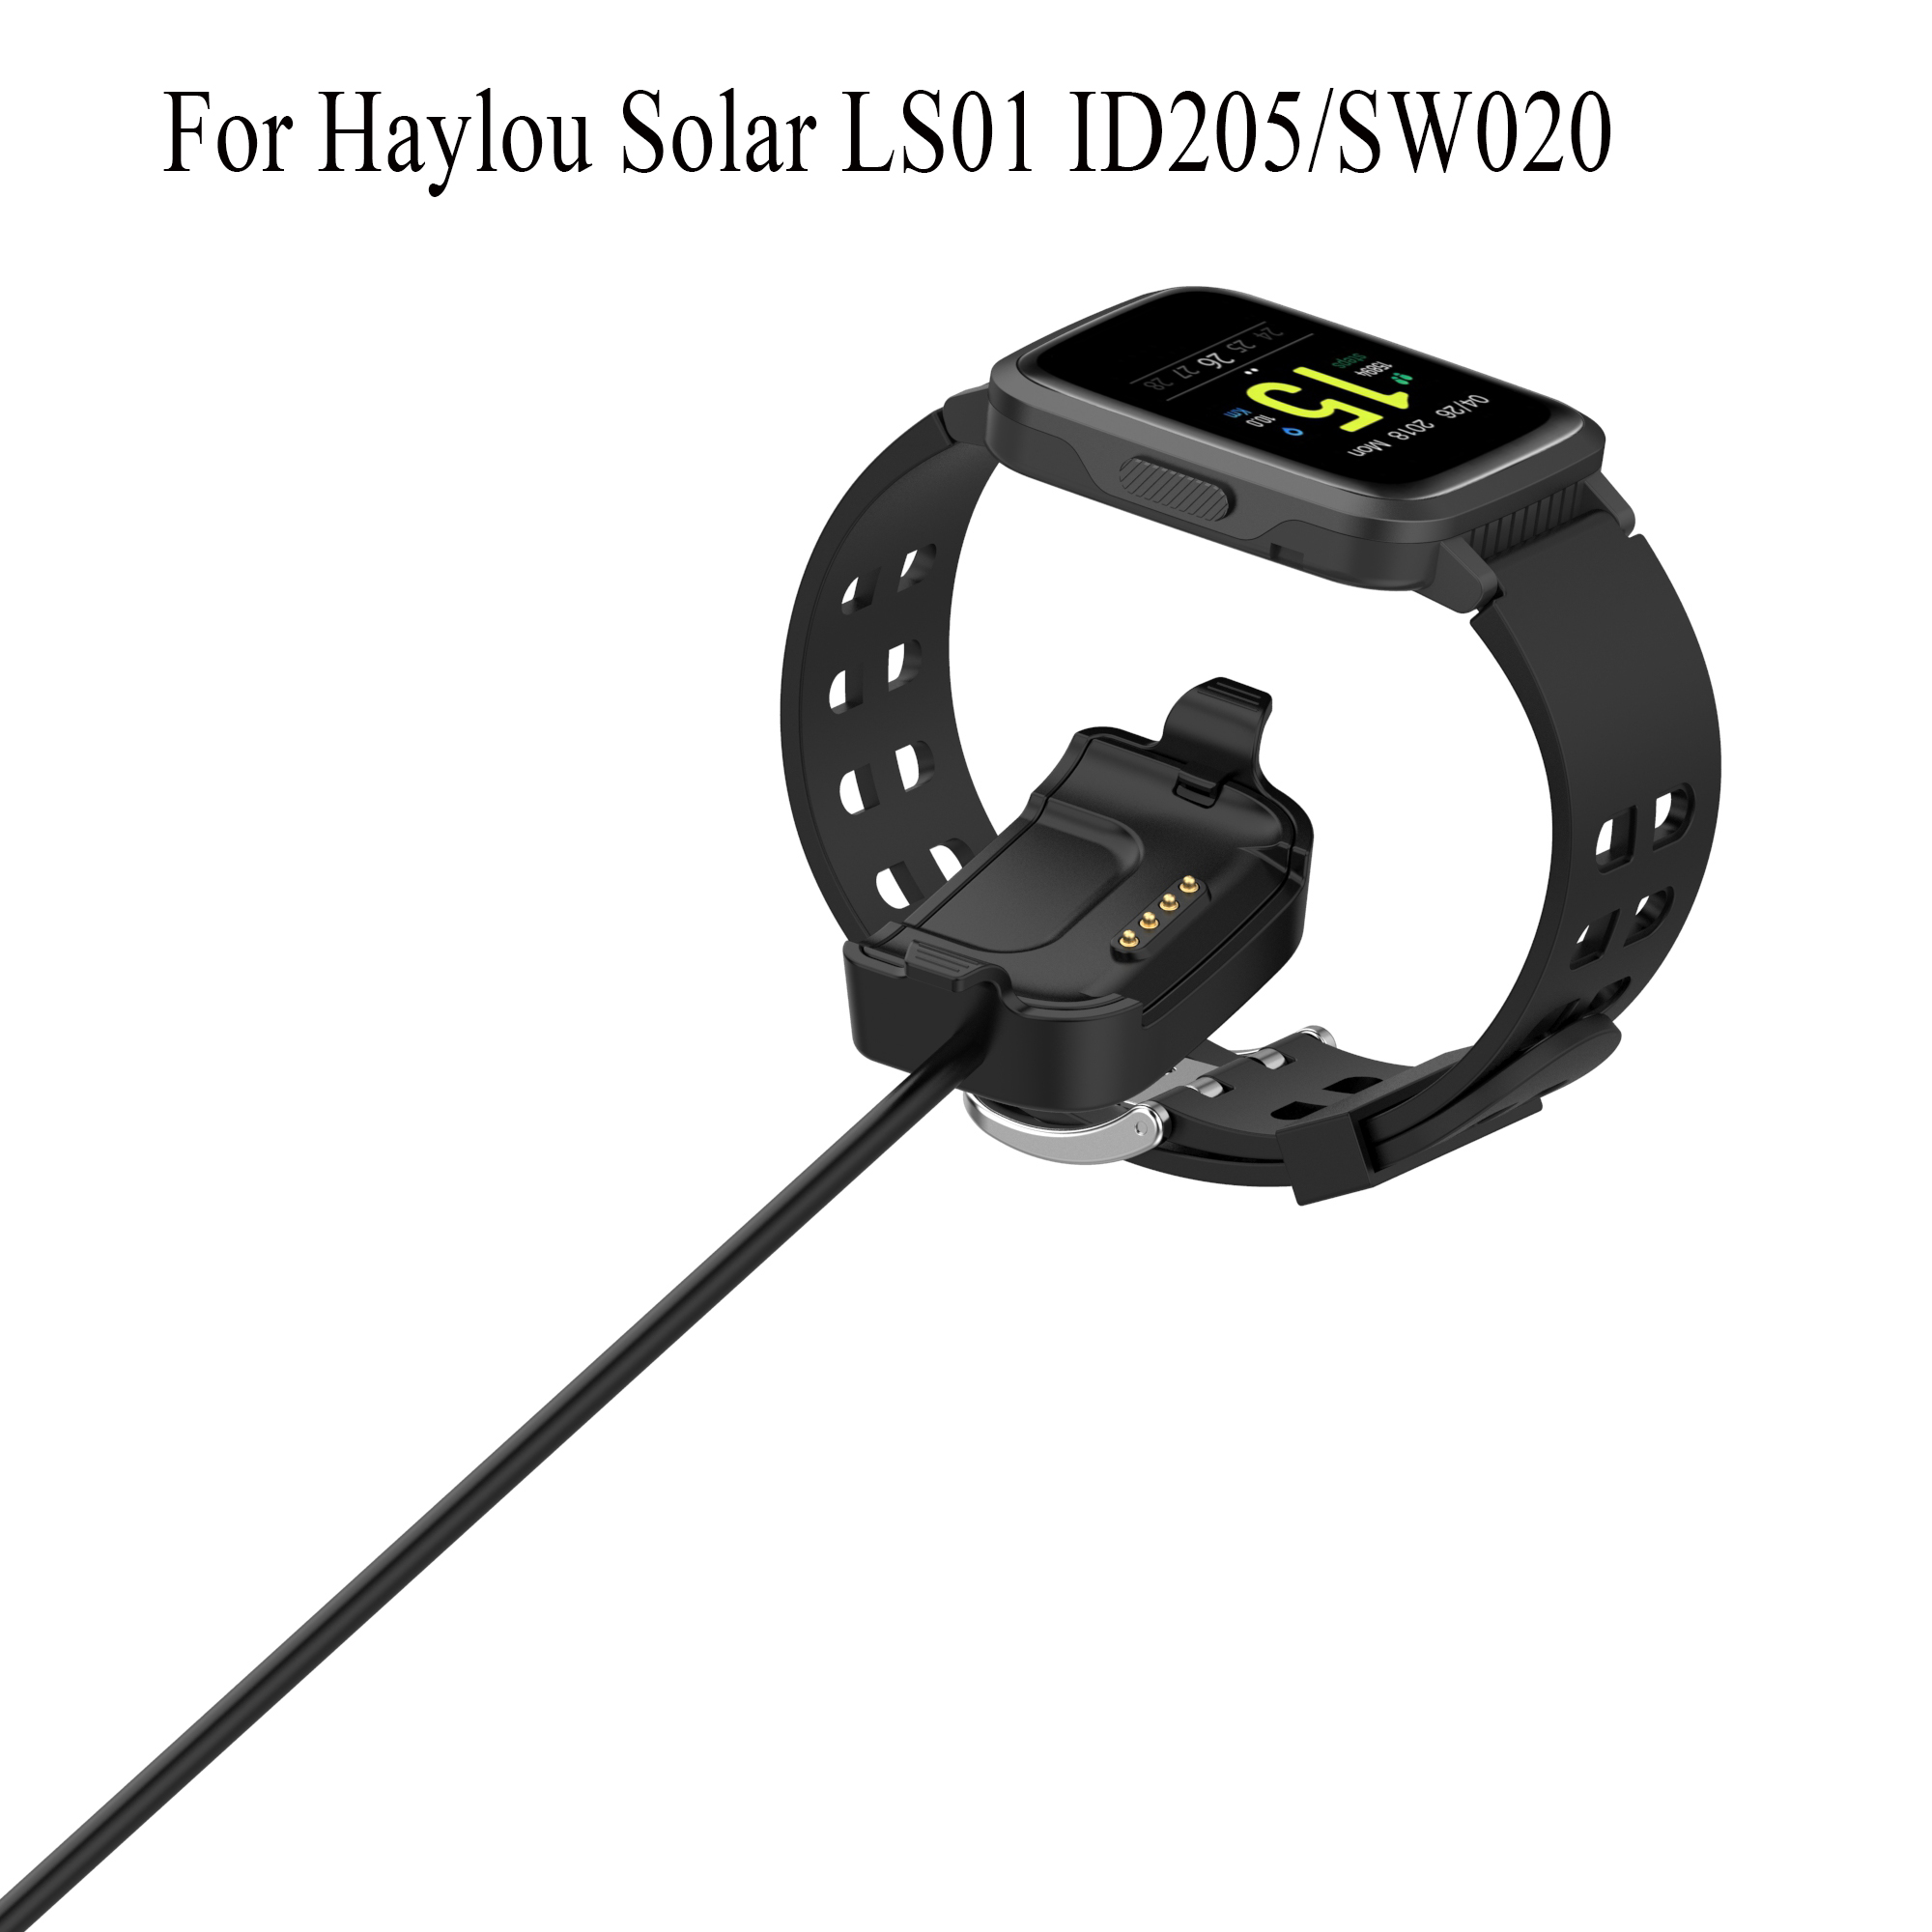 1M USB Cable Charging Data Charger For Haylou Solar LS01 ID205/SW020 Smart Watch Charger Dock Power Adapter Accessories new